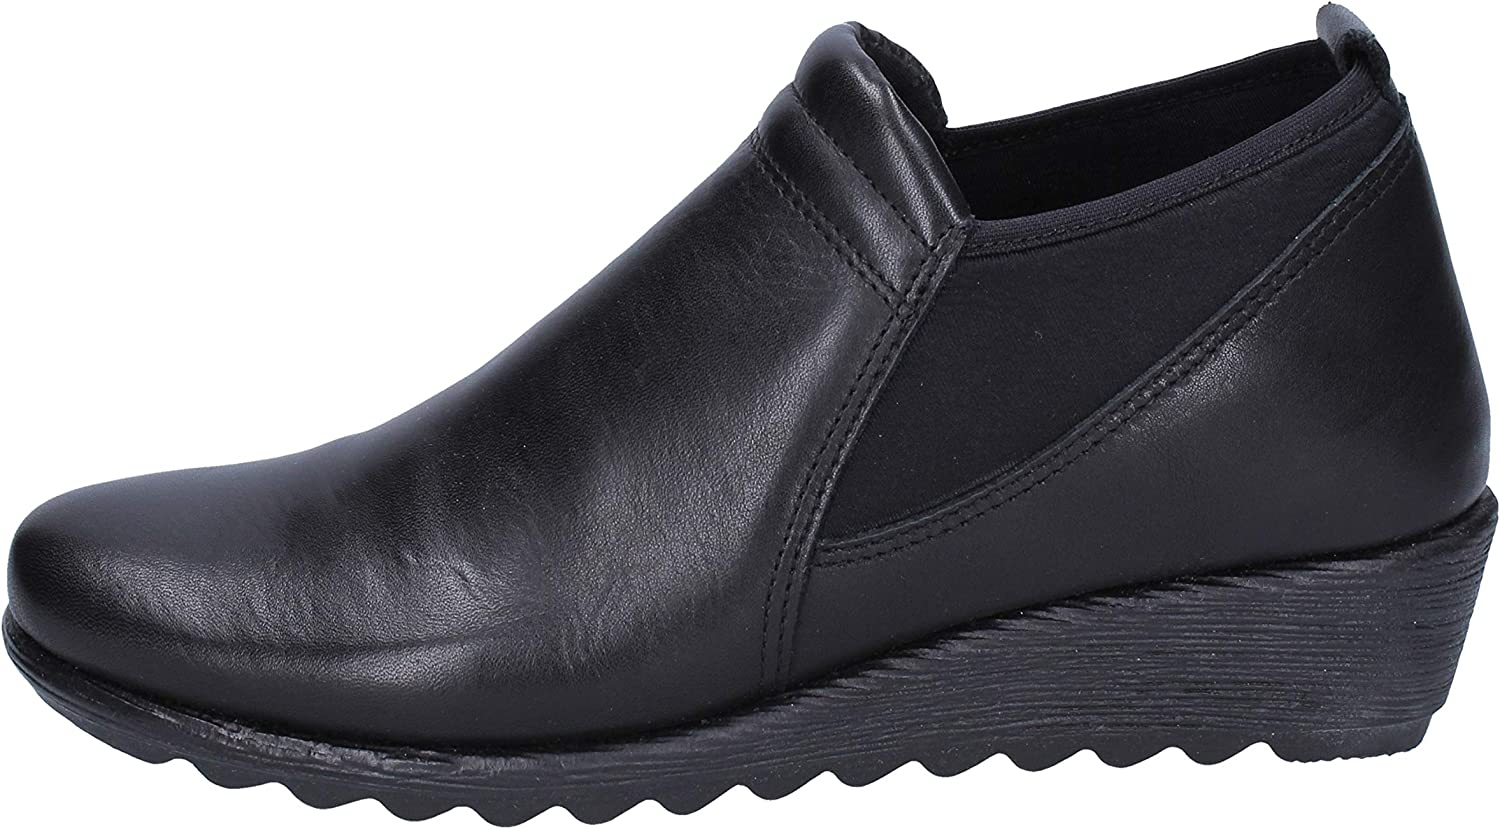 RIPOSELLA Loafers-shoes Womens Leather Black